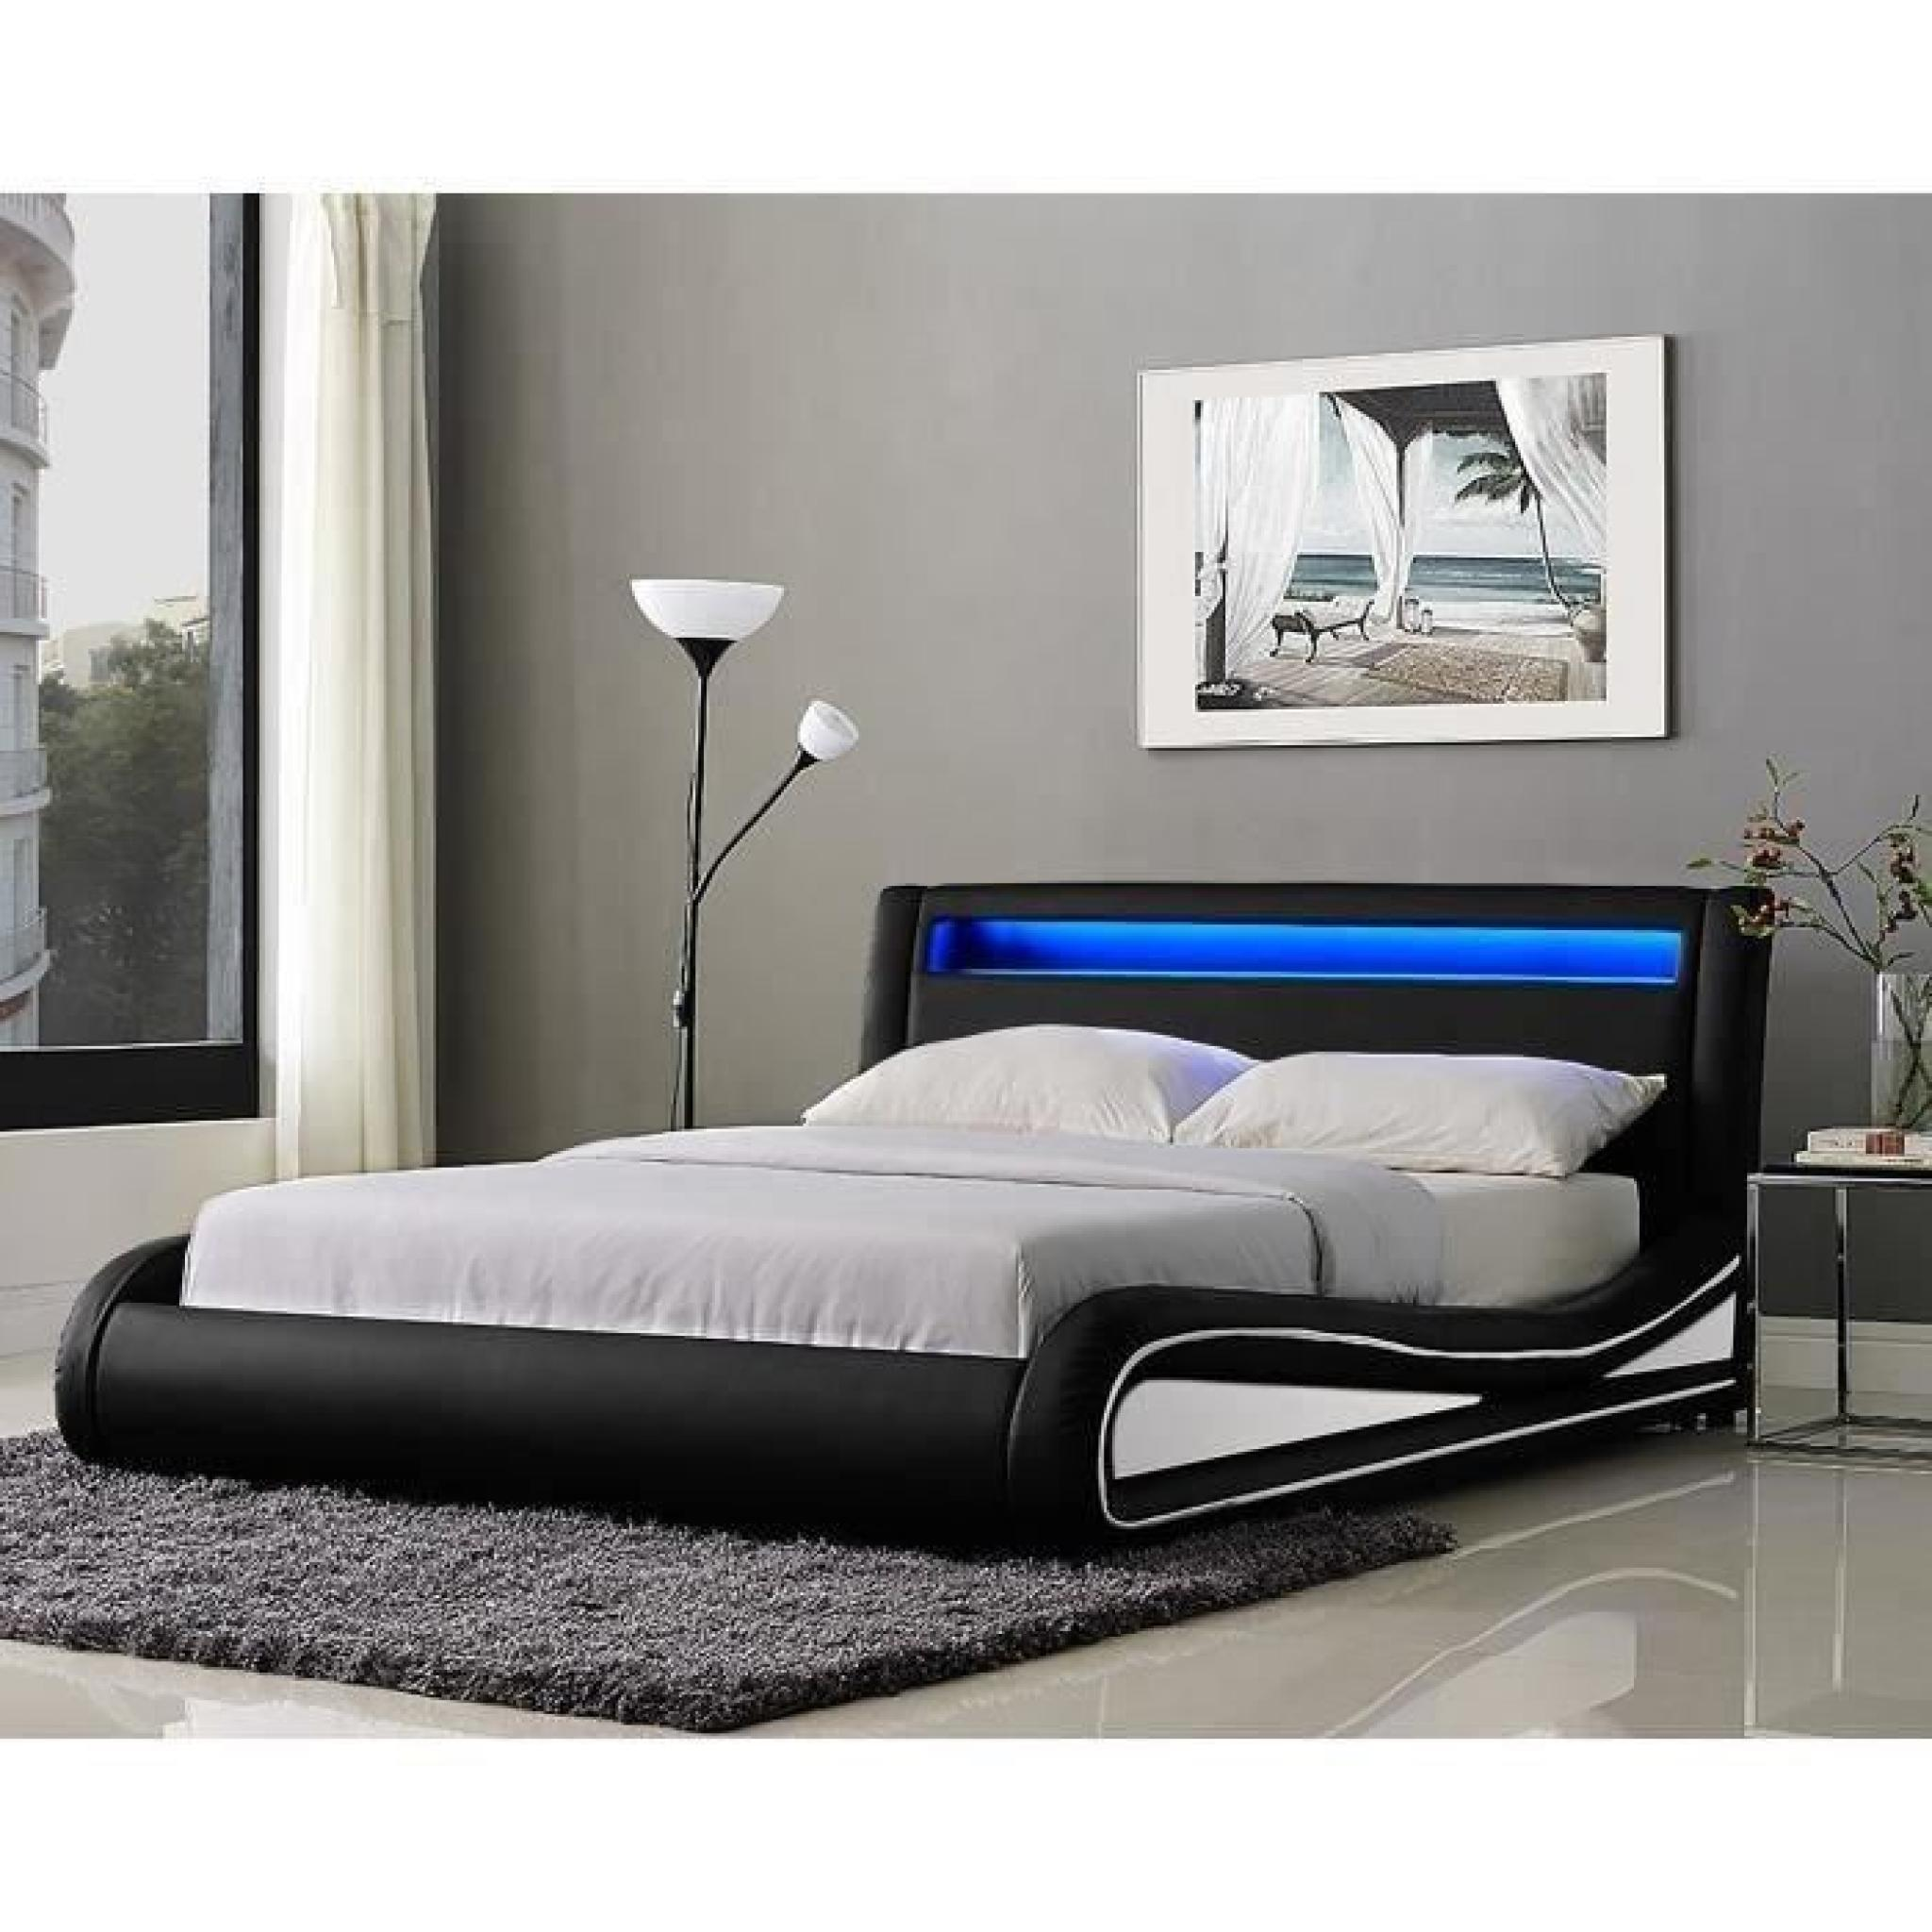 neptune lit led adulte 180x200 cm noir et blanc achat vente lit pas cher couleur et. Black Bedroom Furniture Sets. Home Design Ideas